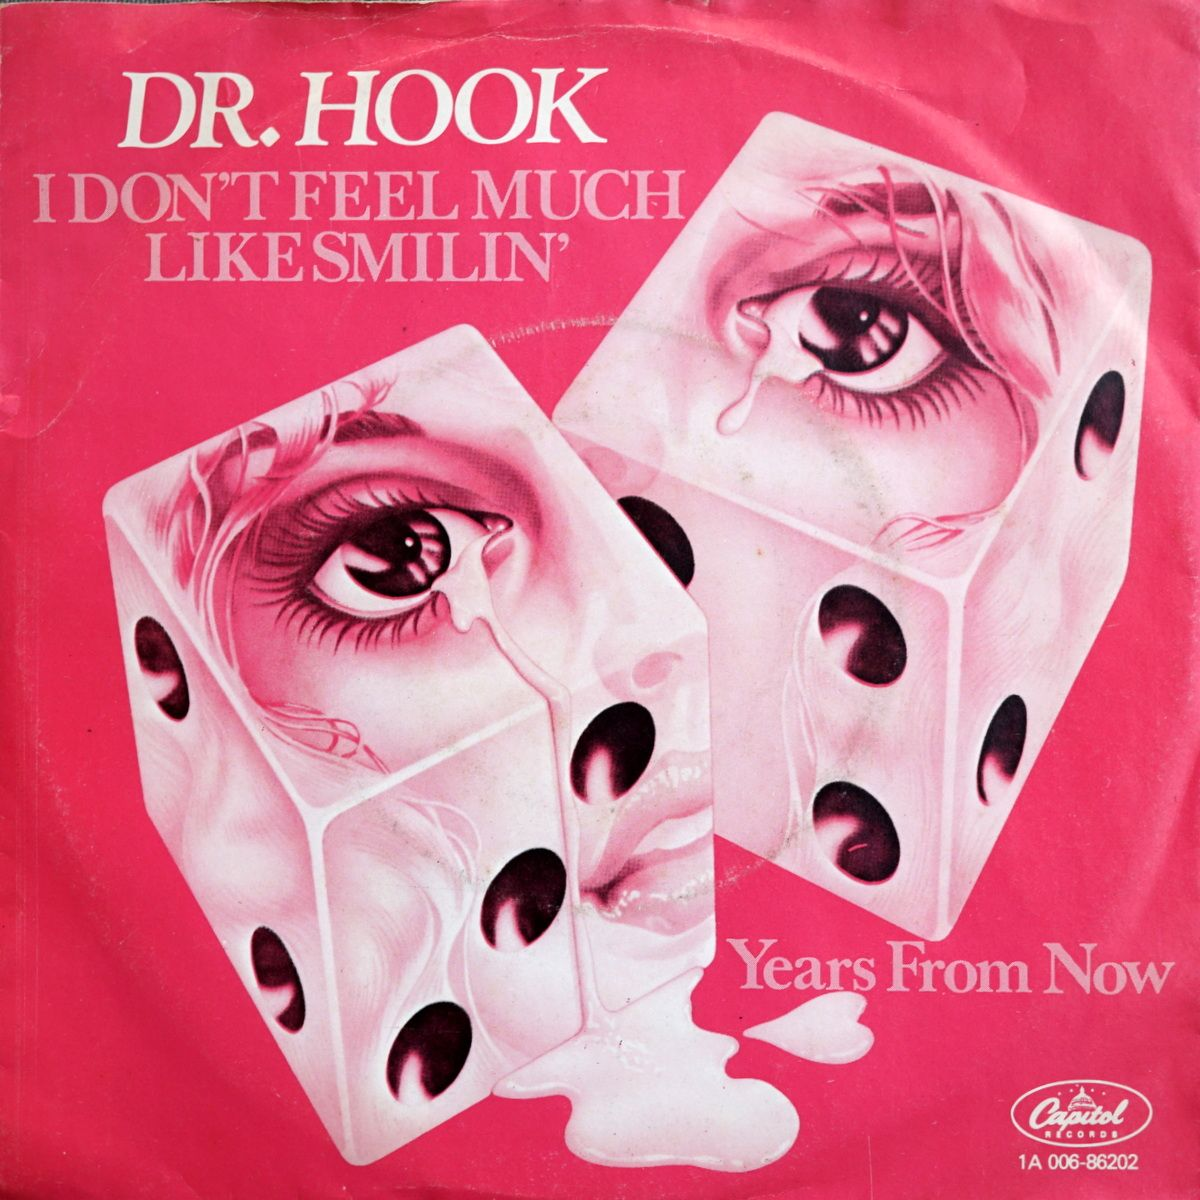 S SW B1 - 1A 006-86202 - I Dont Feel Much Like Smilin - 1979 - NL